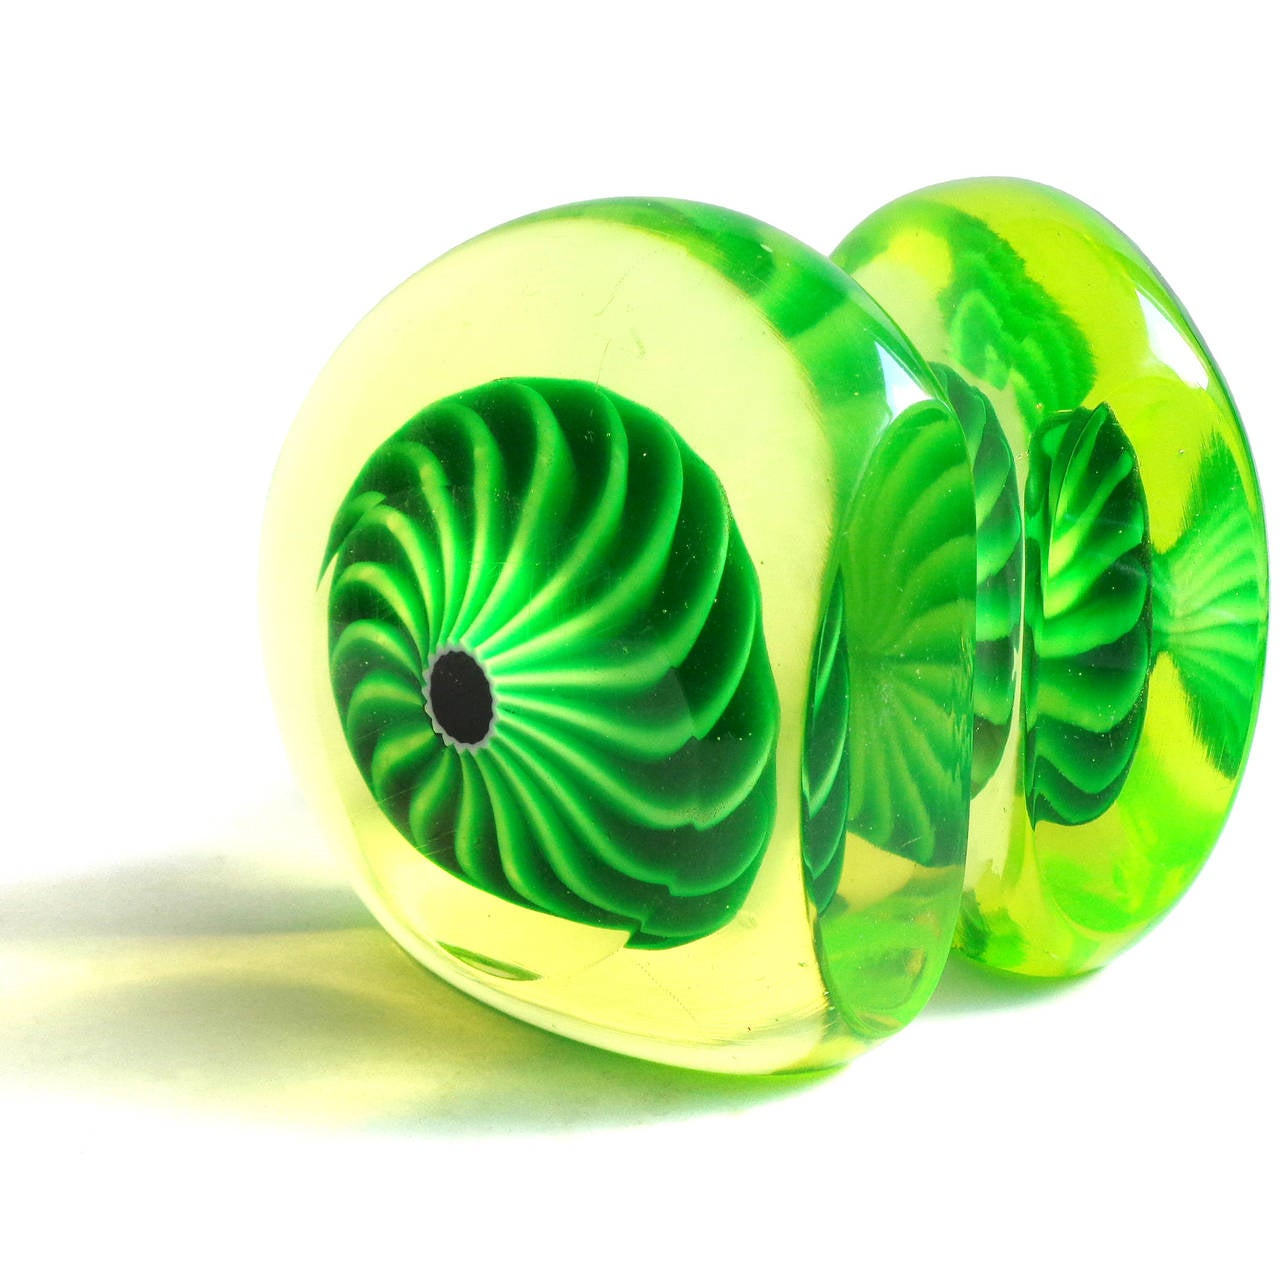 Galliano Ferro Murano Vaseline Green Swirl Design Italian Art ...